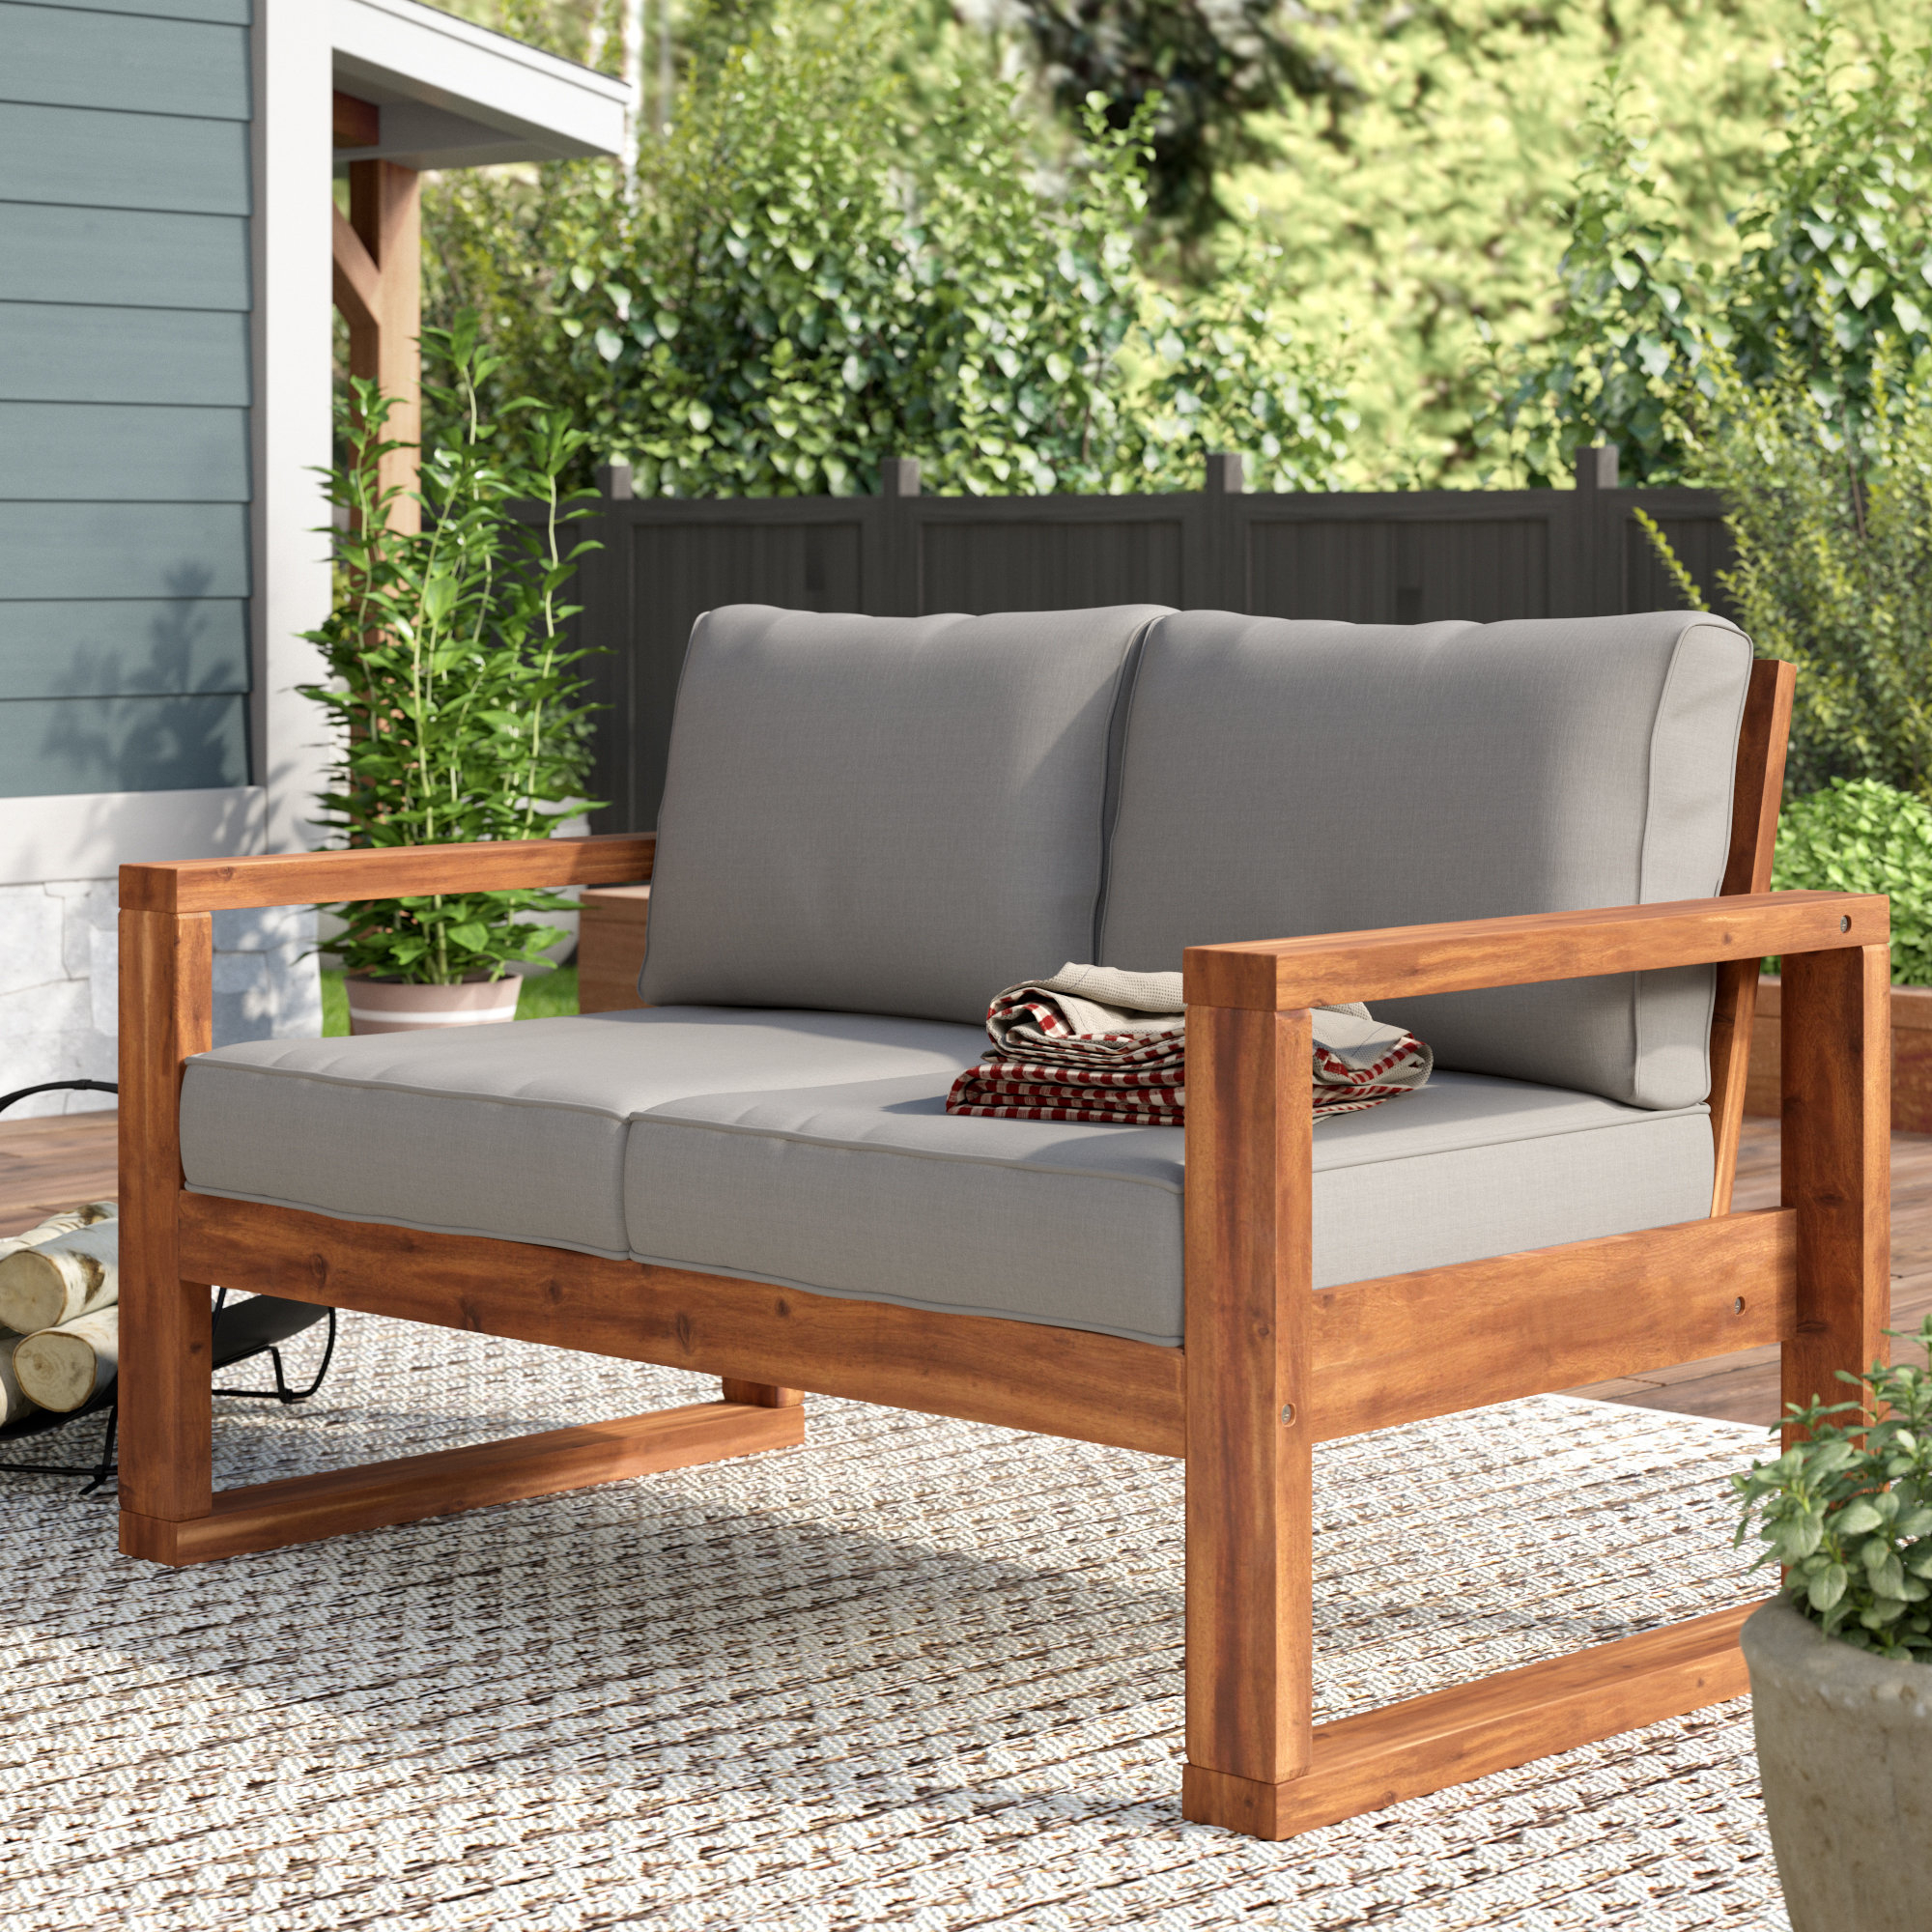 2019 Lyall Loveseat With Cushion In Lakeland Teak Loveseats With Cushions (Gallery 12 of 20)